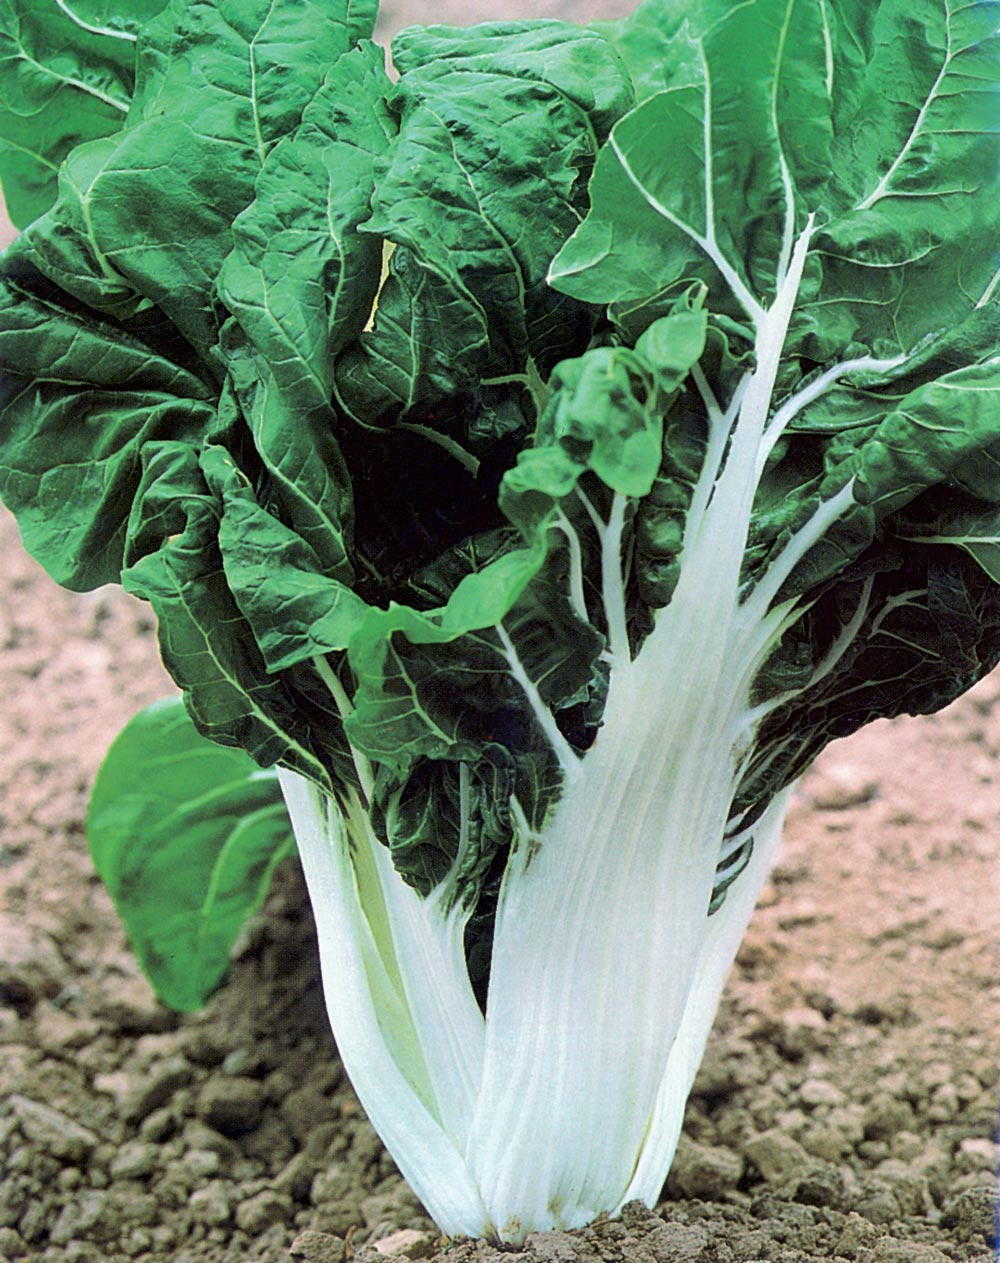 28 - Swiss Chard-Crinkly Leaves with white stalk